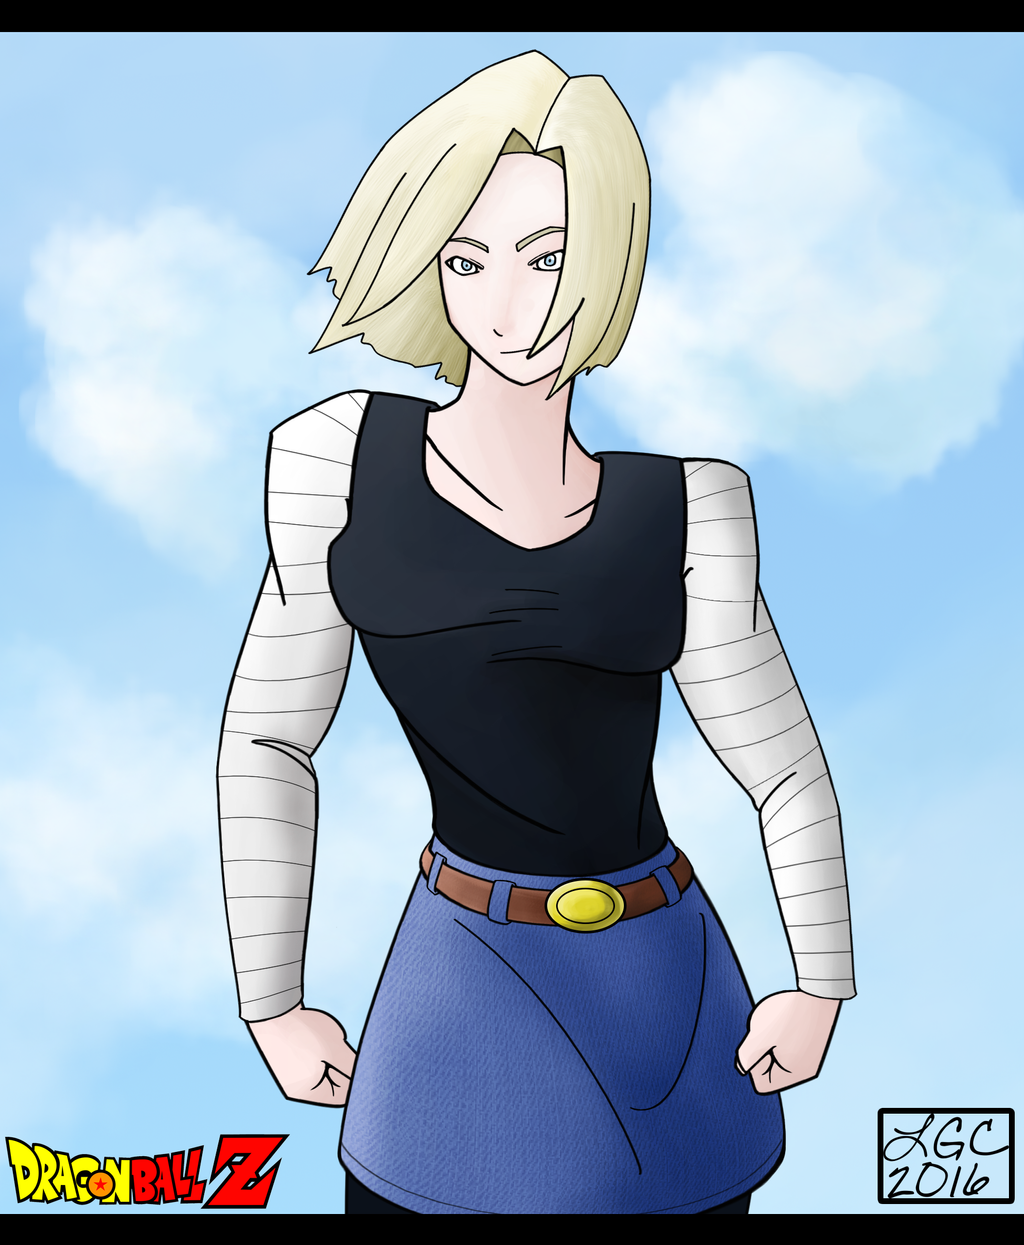 Android 18 And Tail Deviantart: Android 18 By DoubleRaineBow On DeviantArt